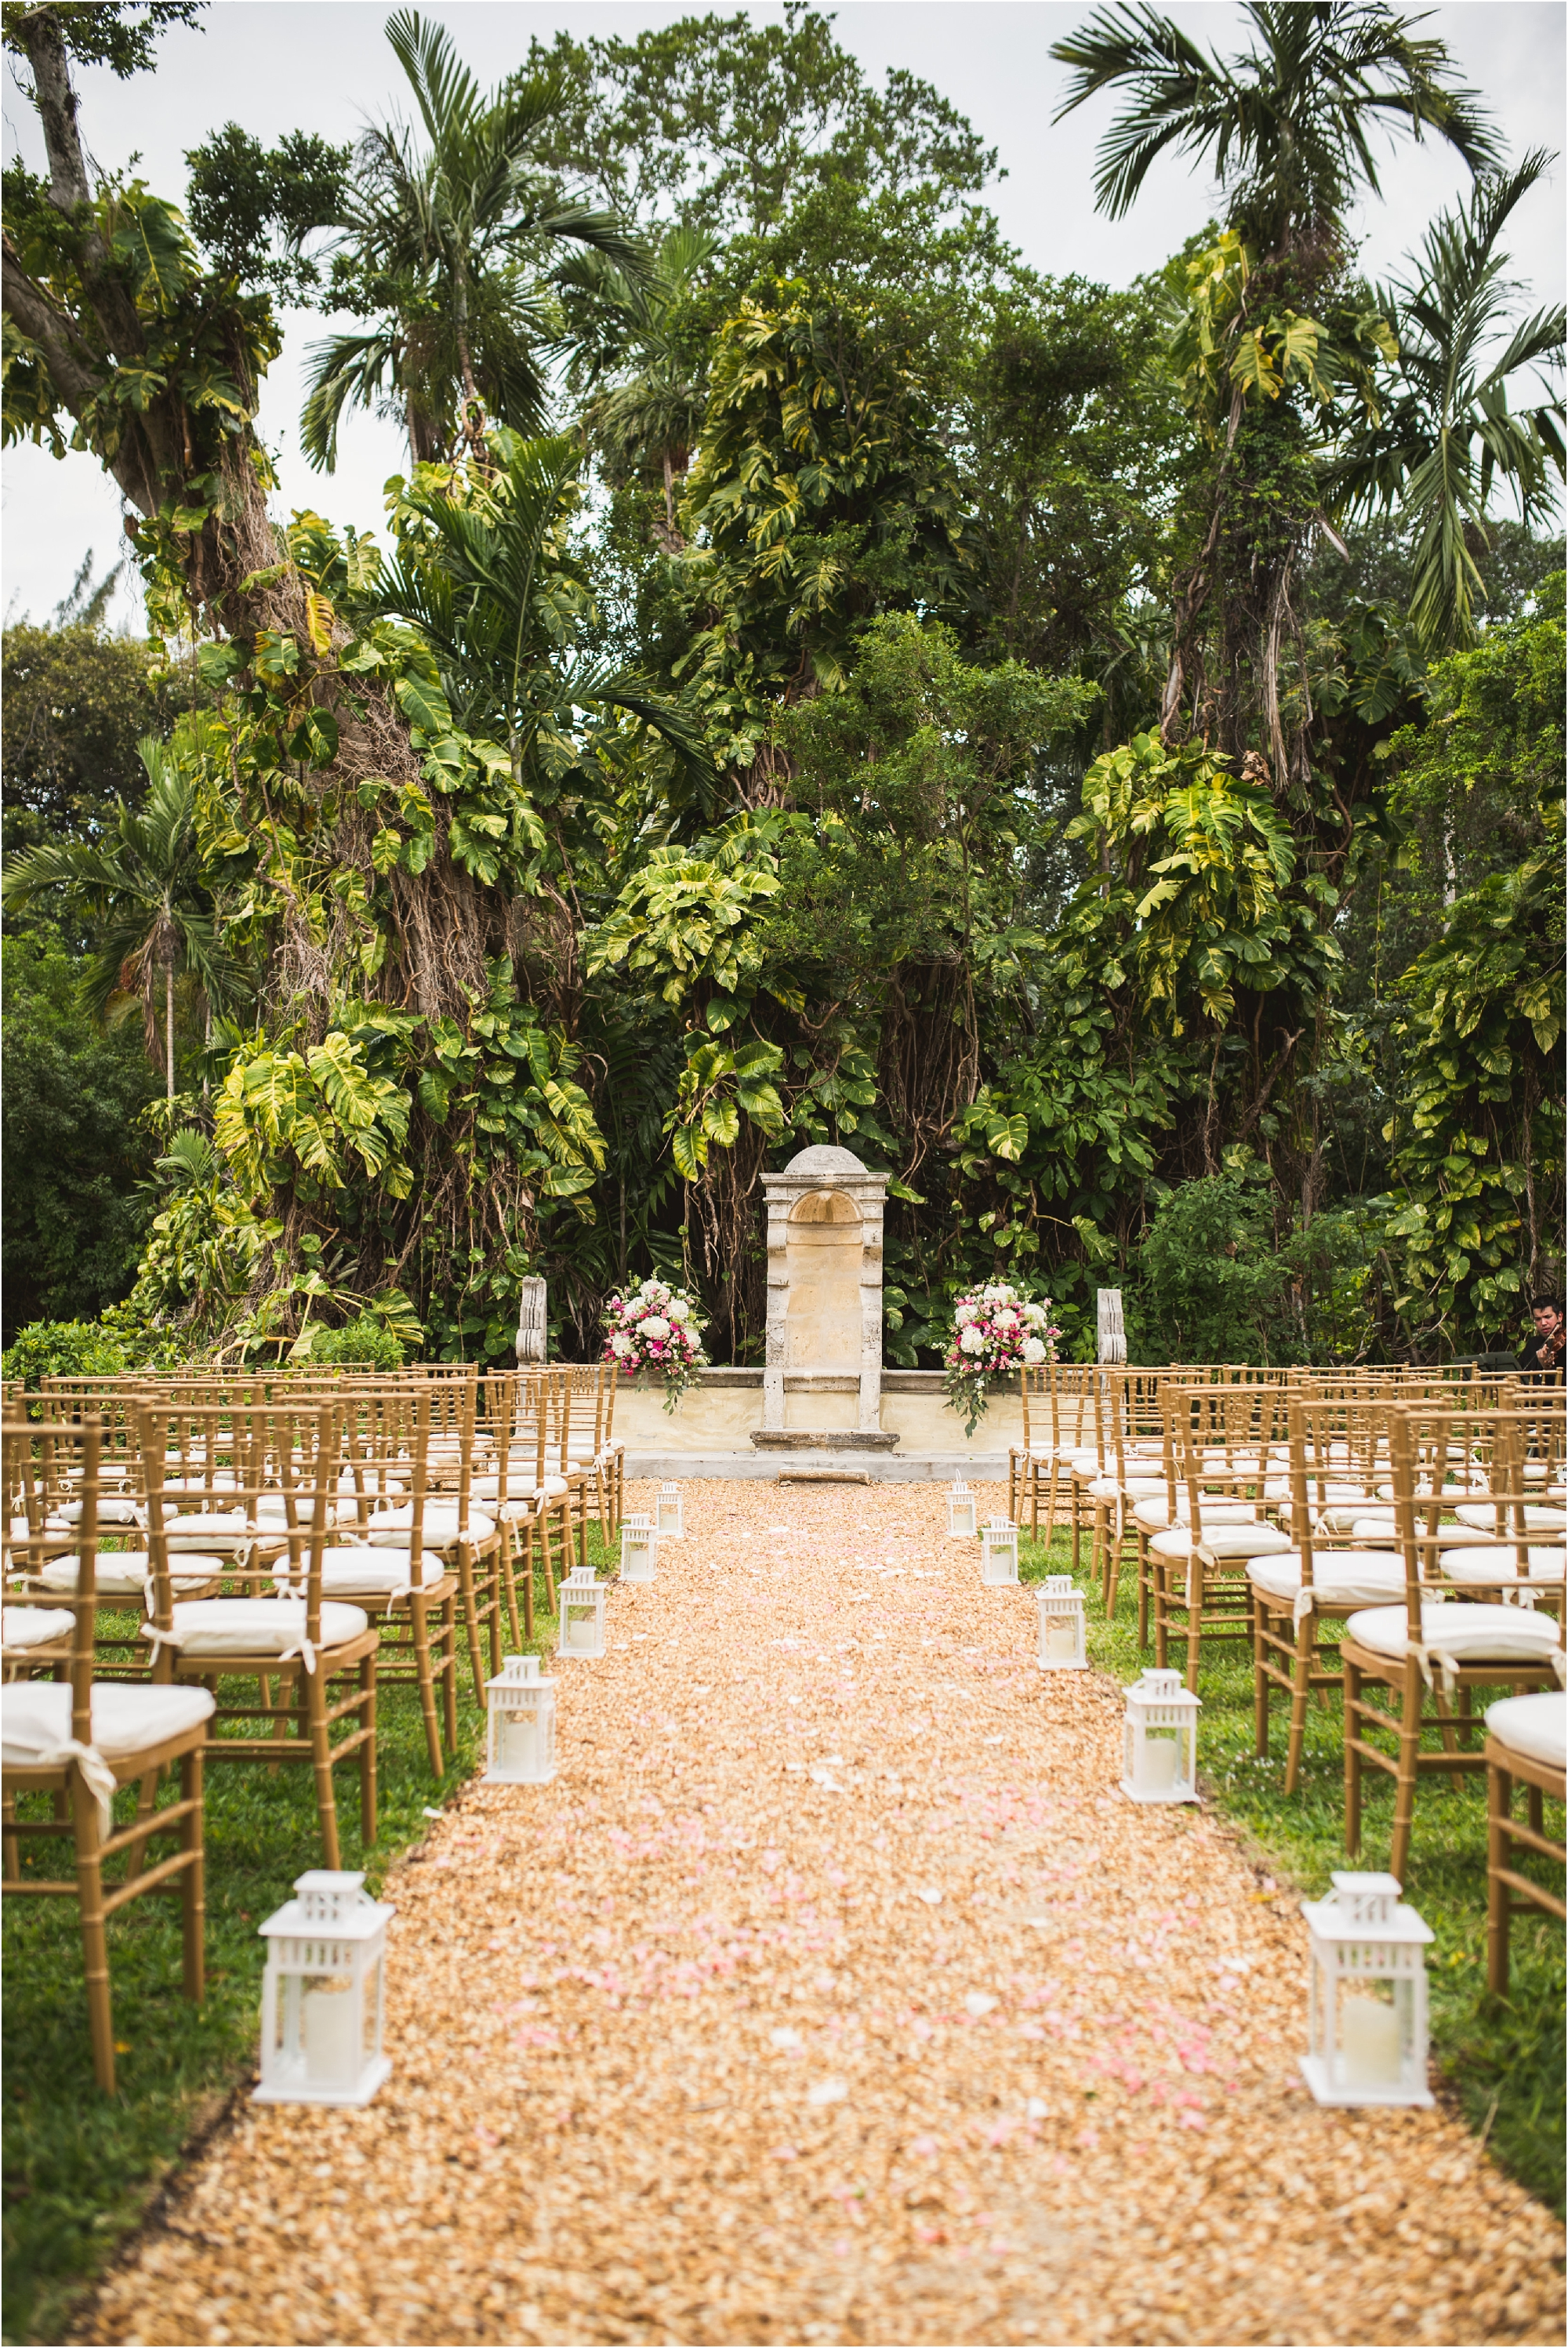 Spanish-Monastery-miami-beach-outdoor-elegant-wedding-photographer-jessenia-gonzalez_1136.jpg